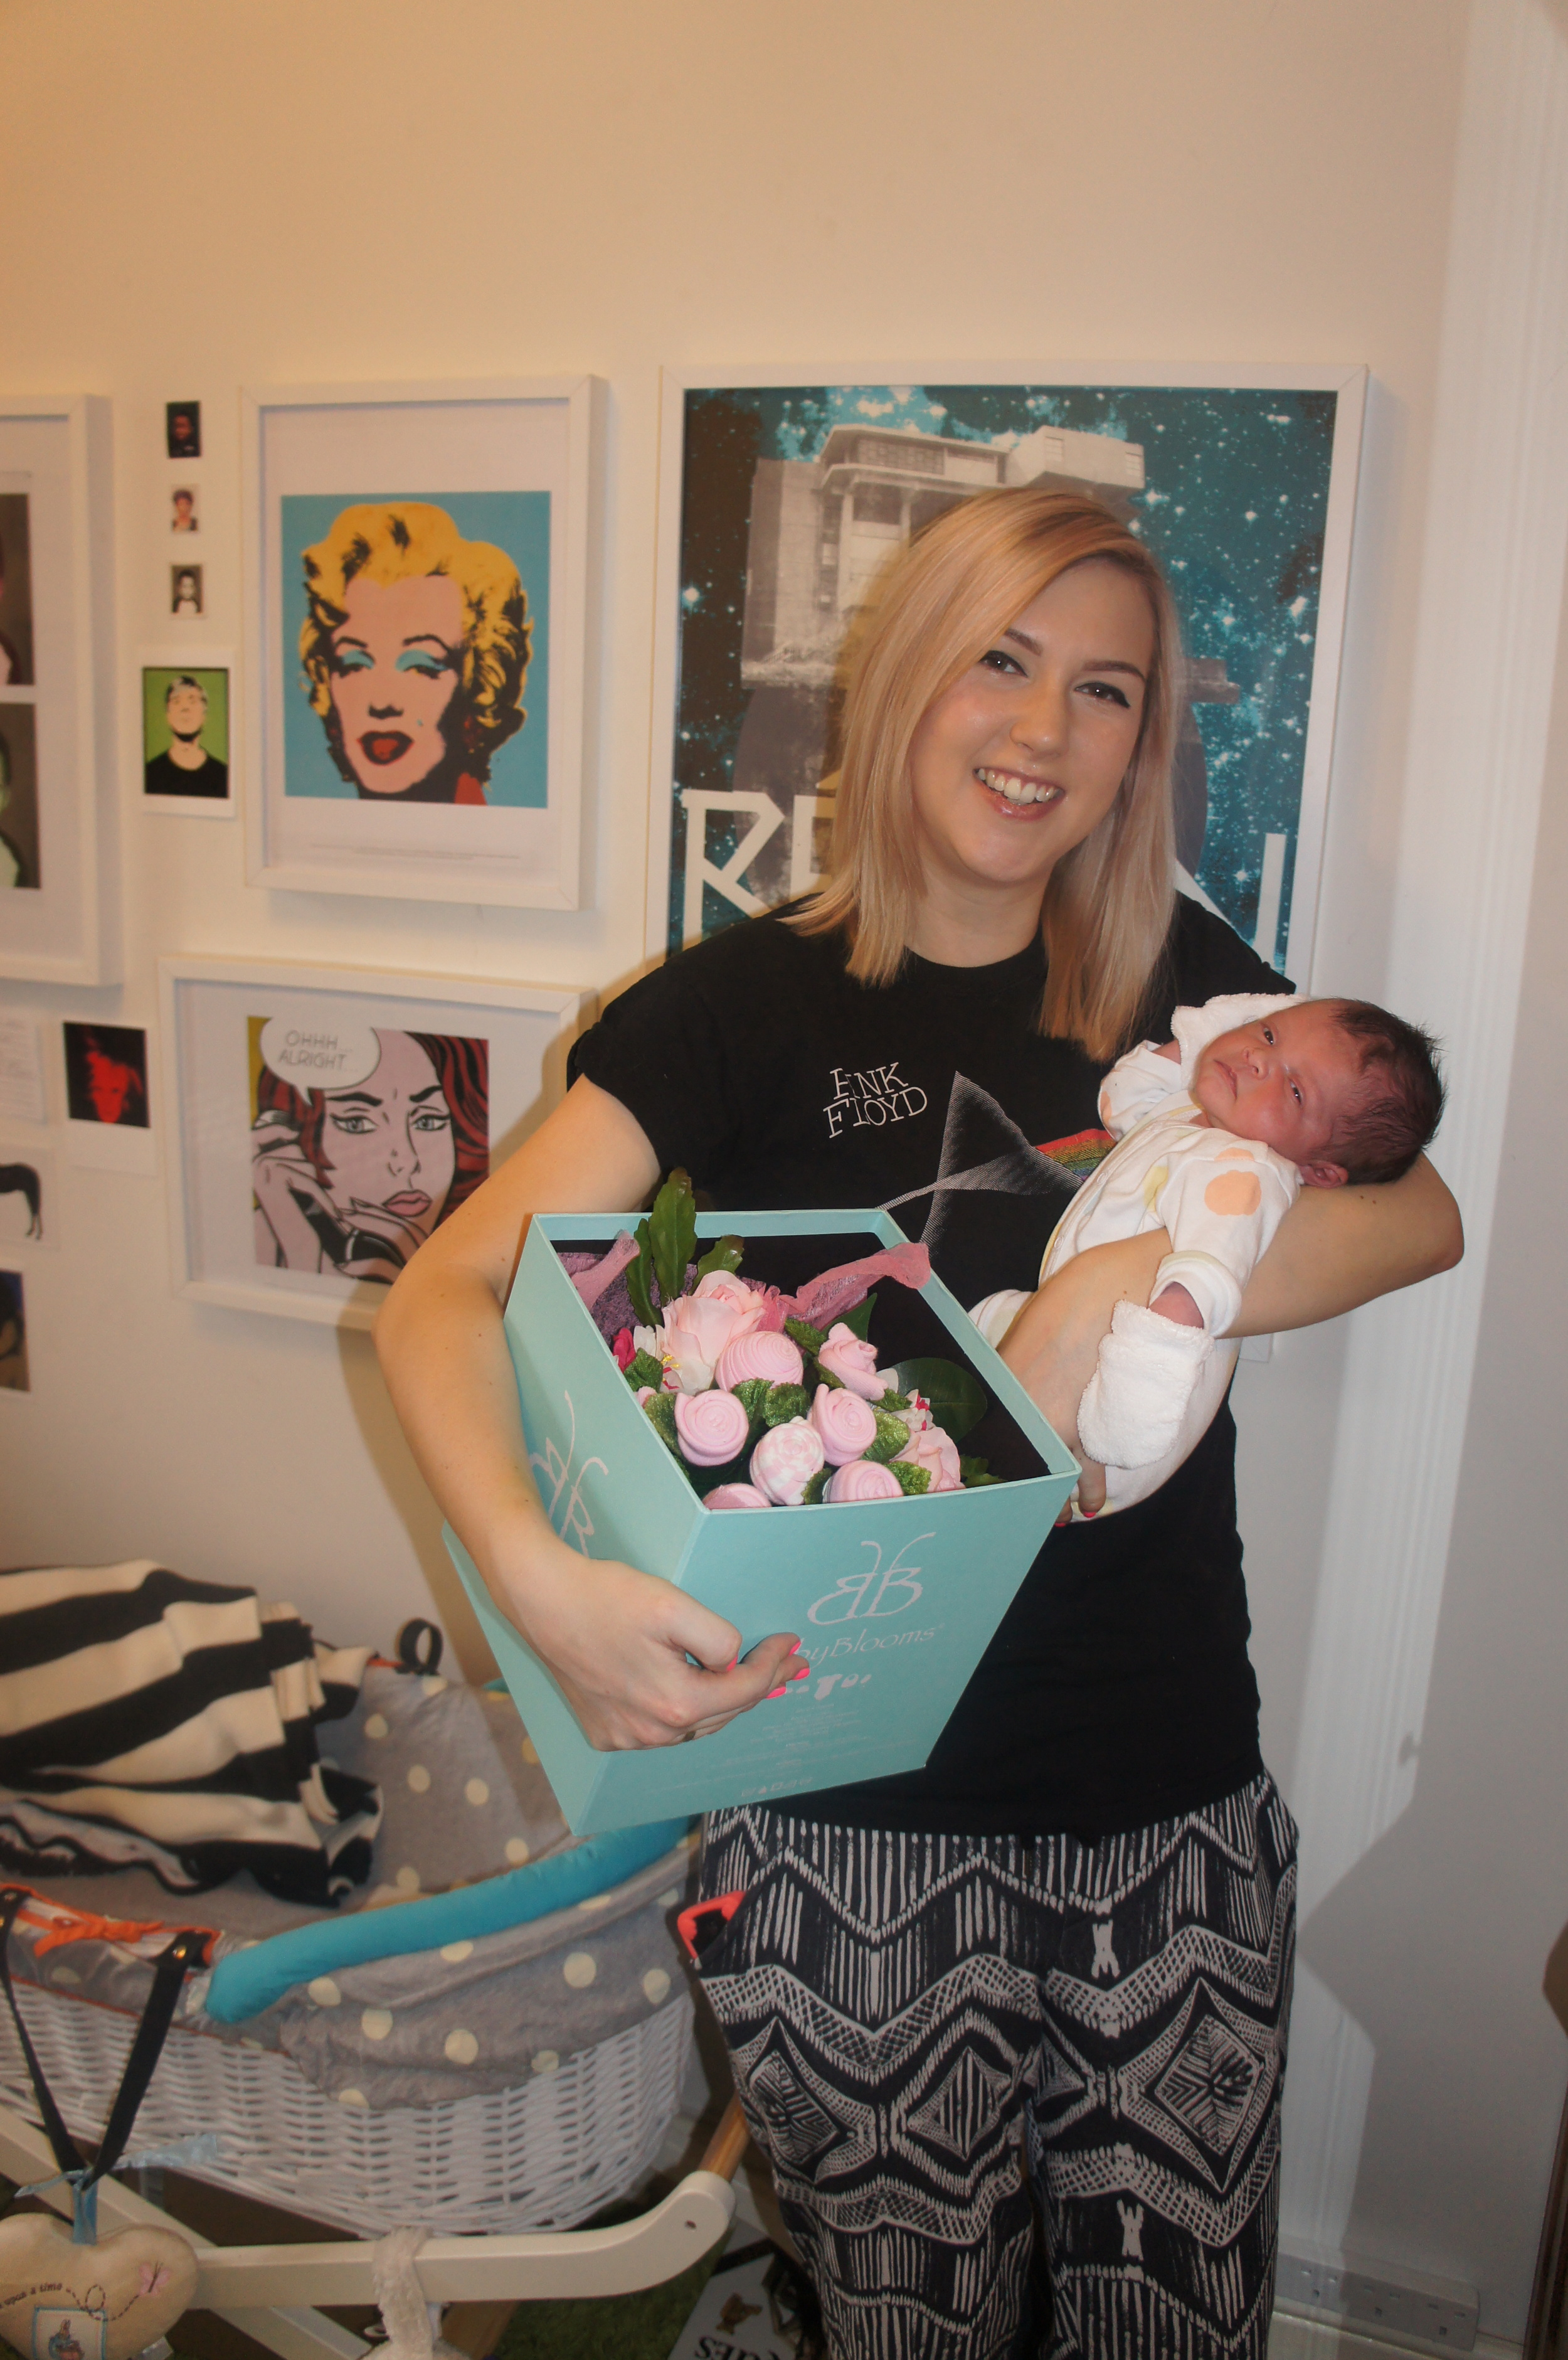 Me and baby marley in our room / living room / baby room / office for just over 2 years